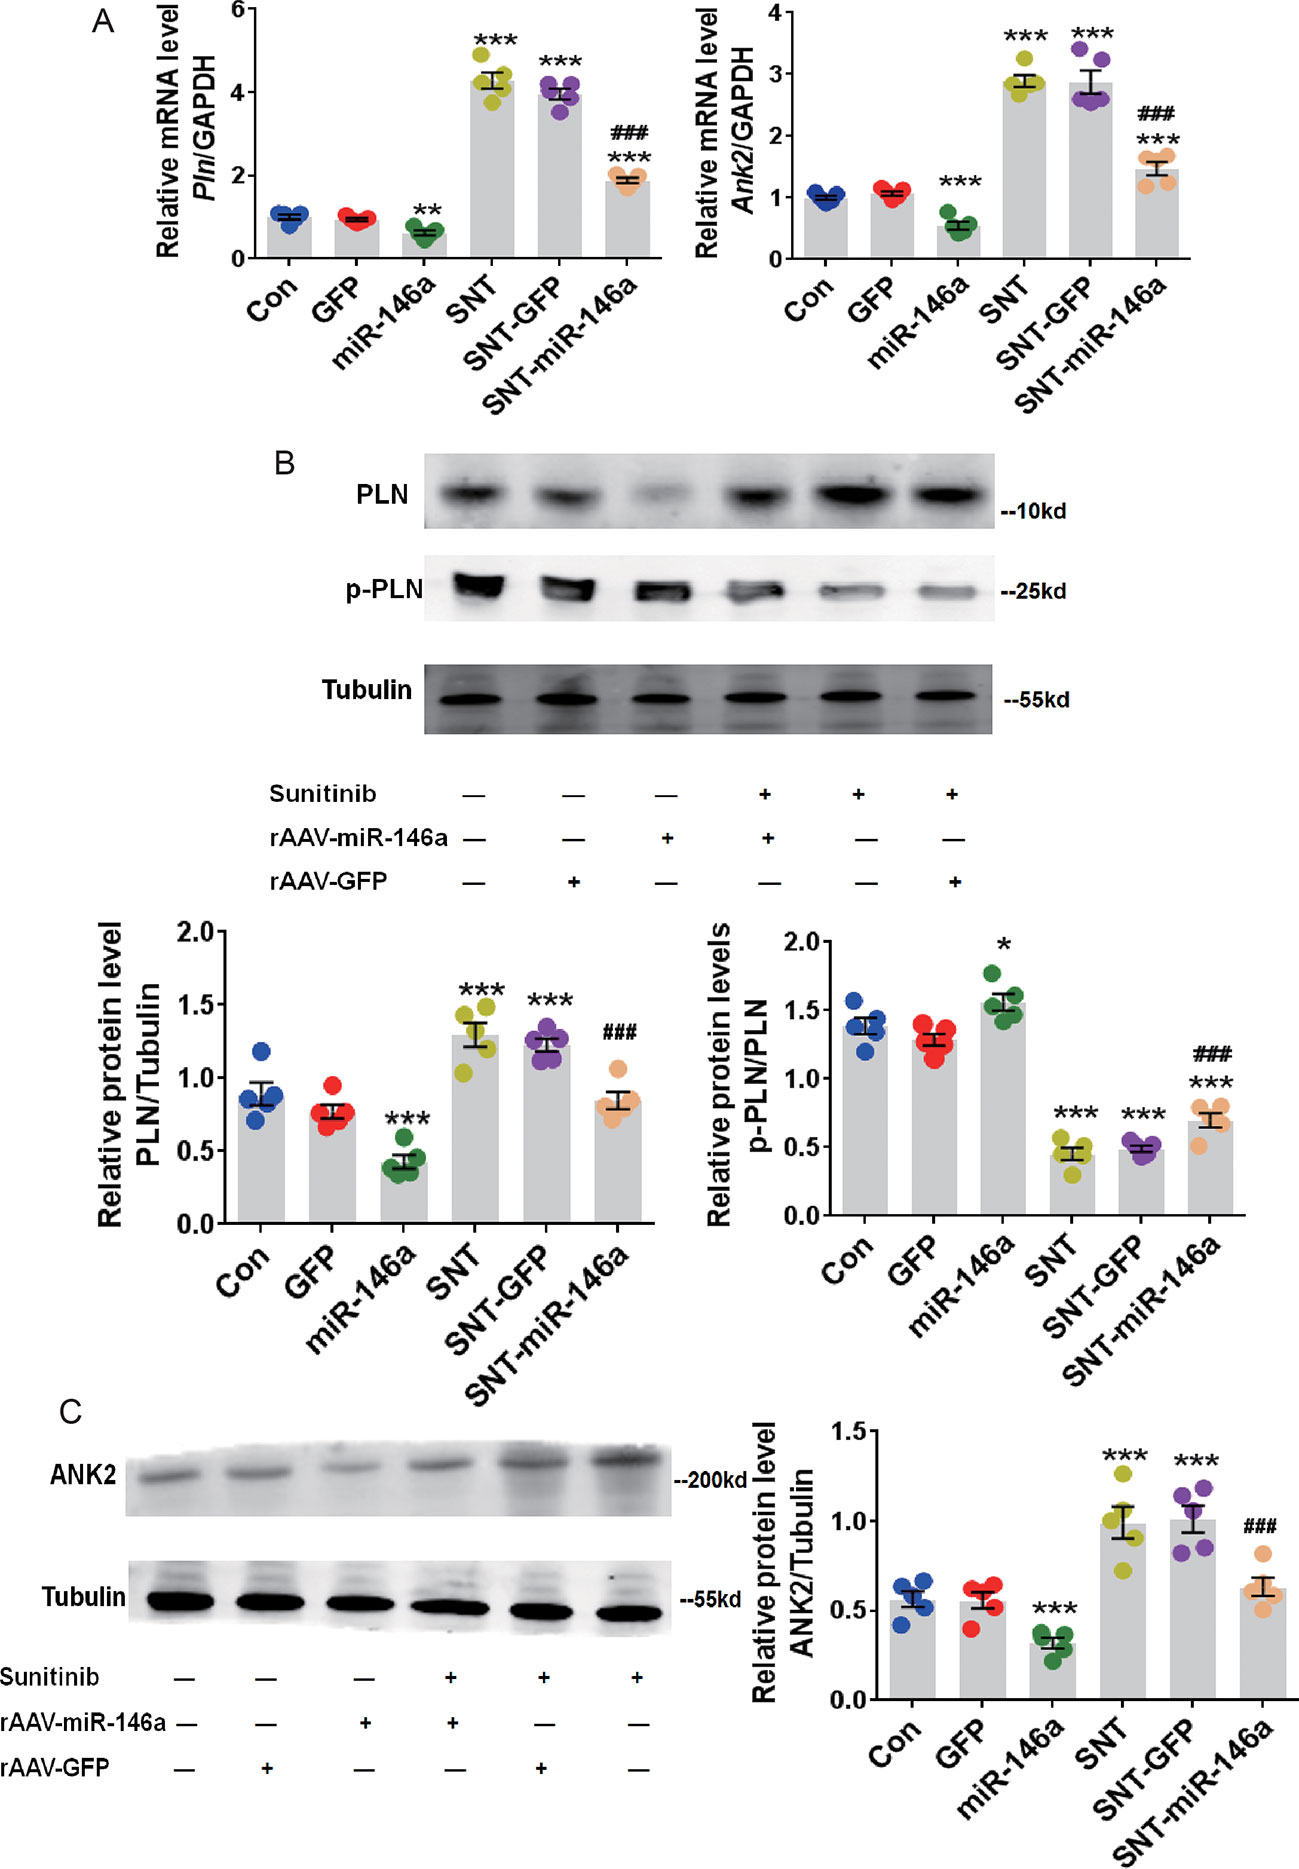 Frontiers | Downregulation of miR-146a Contributes to